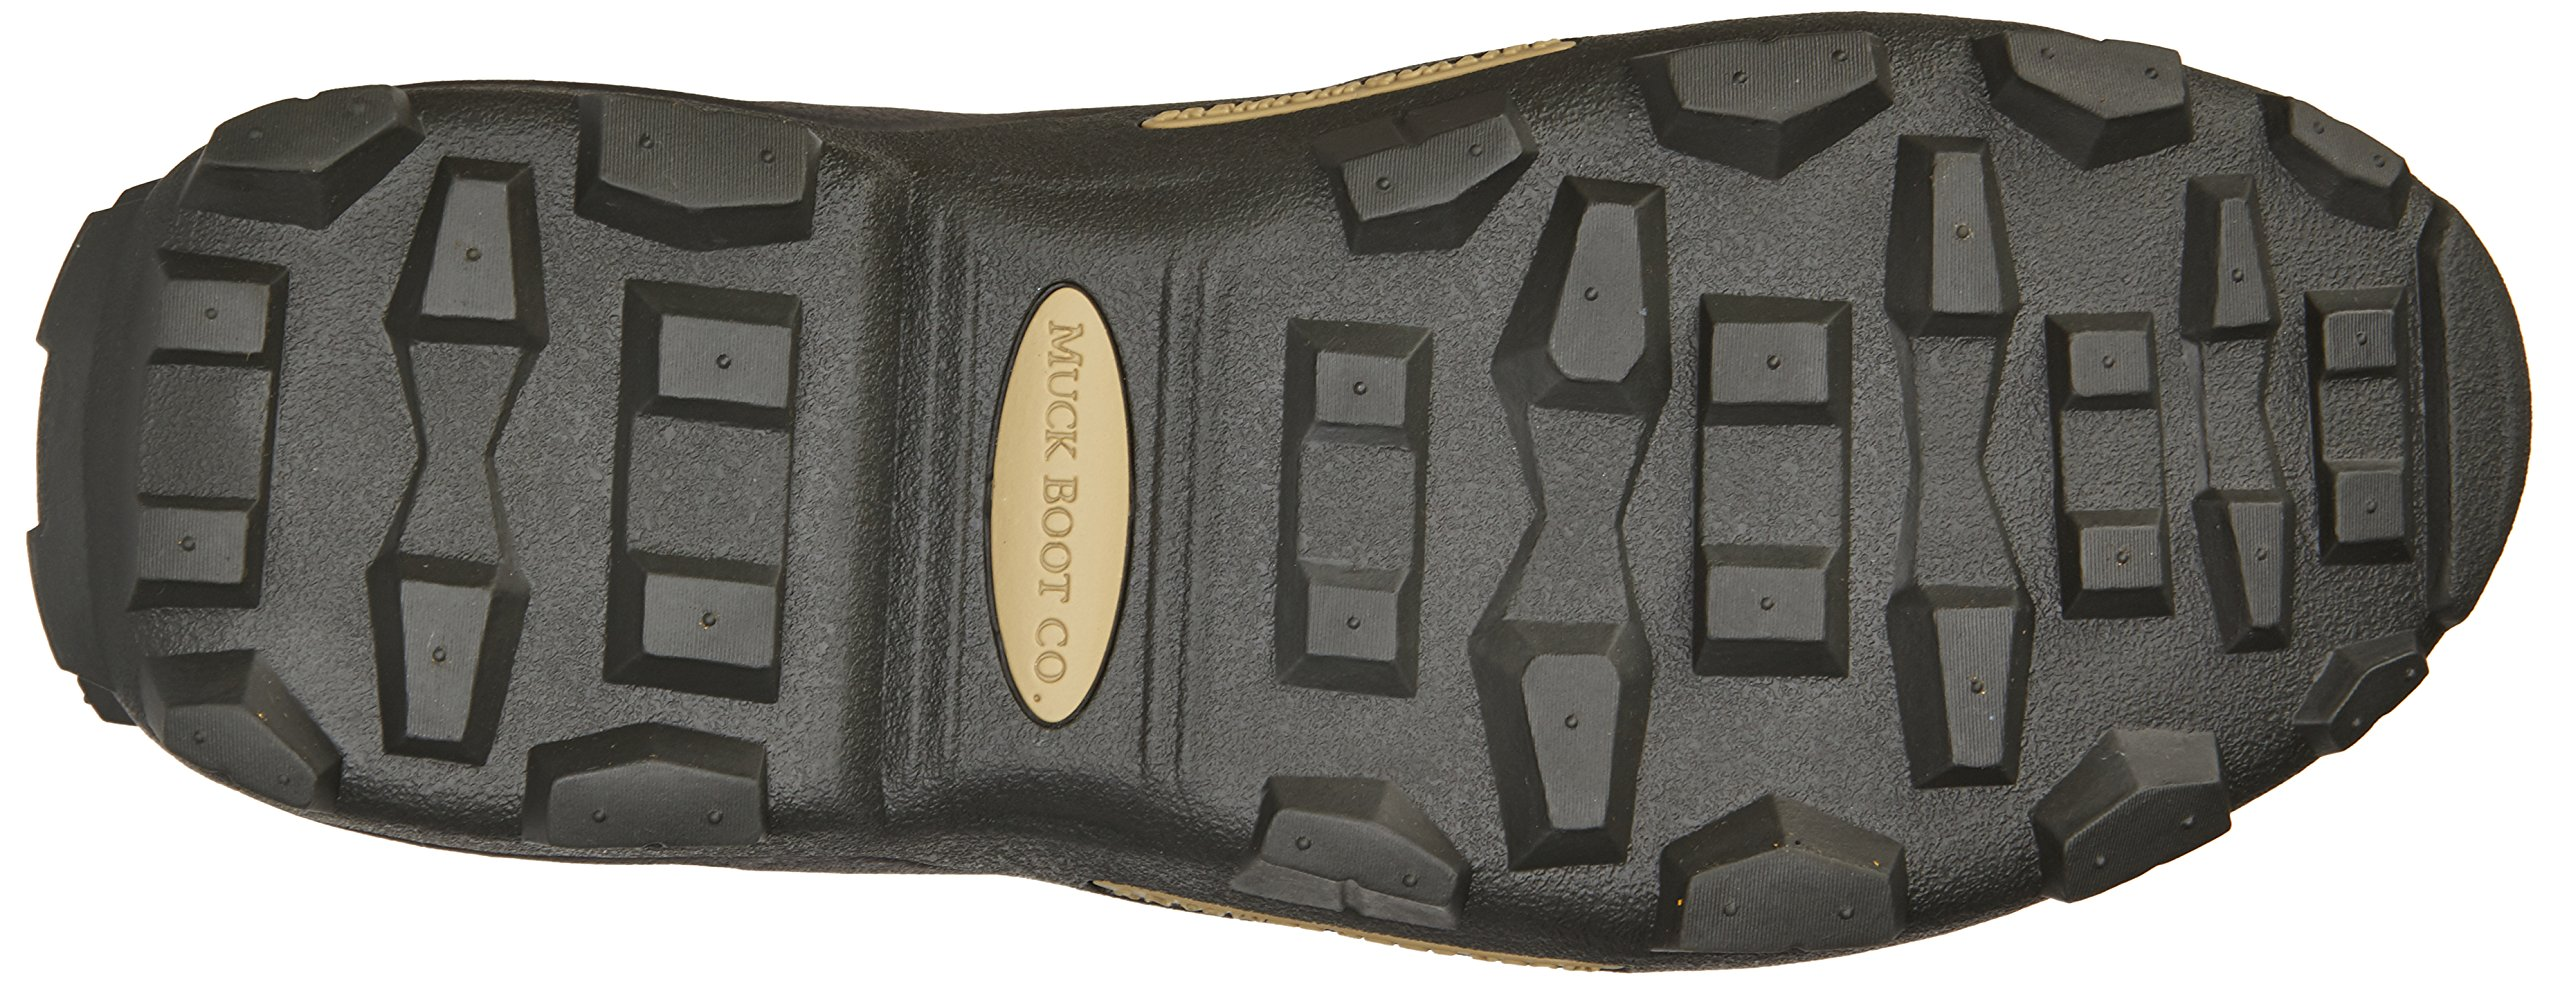 Muck Mens Muckmaster Green Textile Boots 9 US by Muck Boot (Image #3)